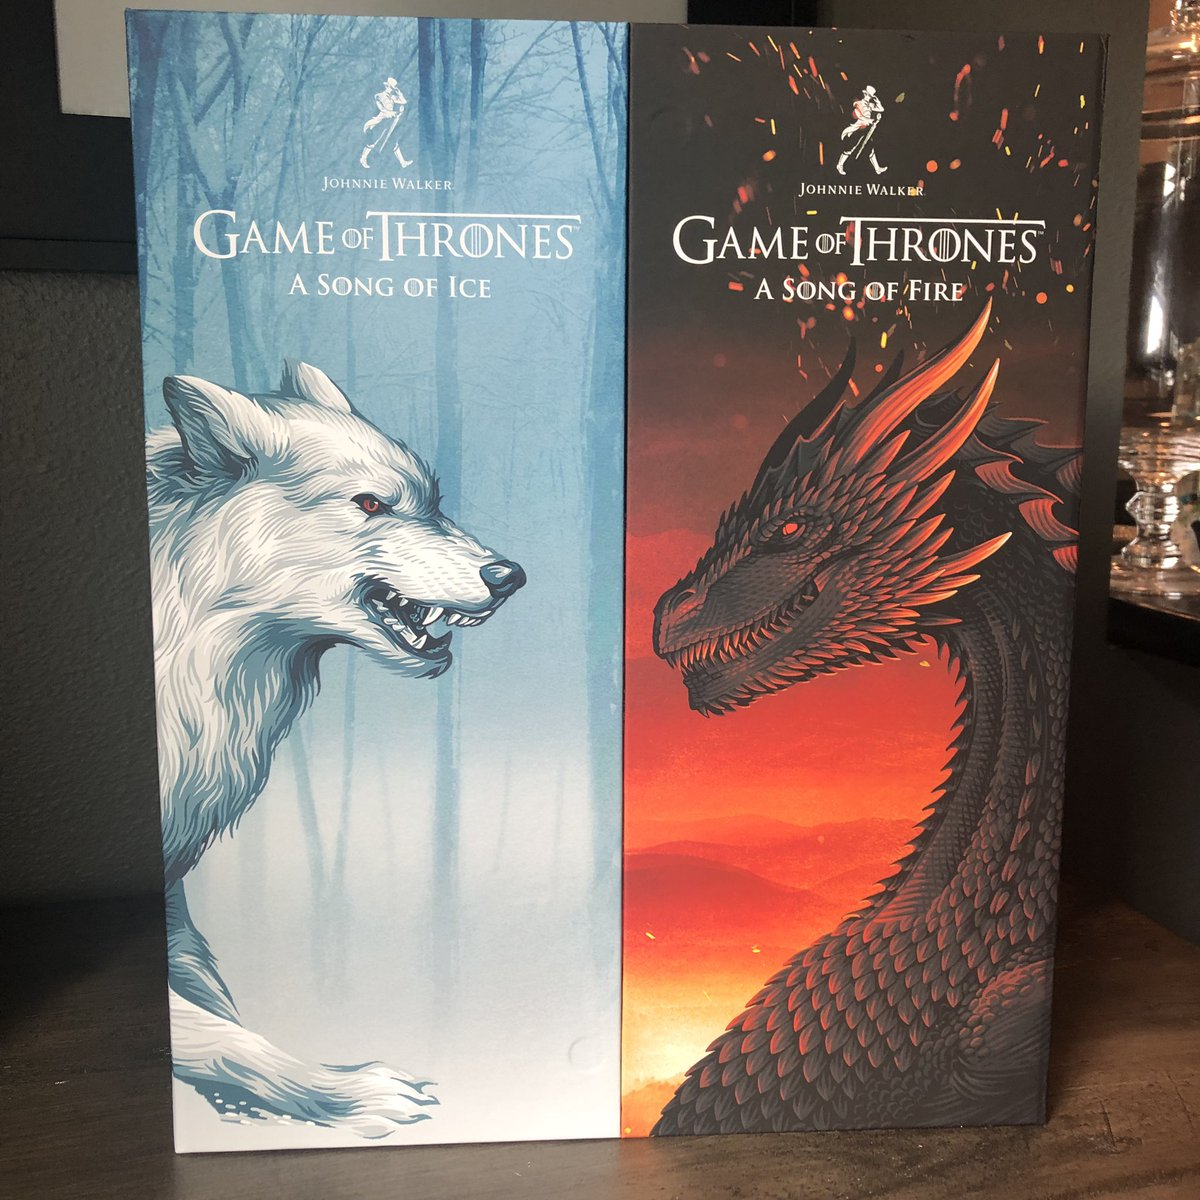 #Winteriscoming to the Northwest this weekend. Good time to tuck into new #GameOfThornes themed releases from @JohnnieWalkerUS #WinterStorm #jwsongofice #jwsongoffire <br>http://pic.twitter.com/4iMUxzTwVd